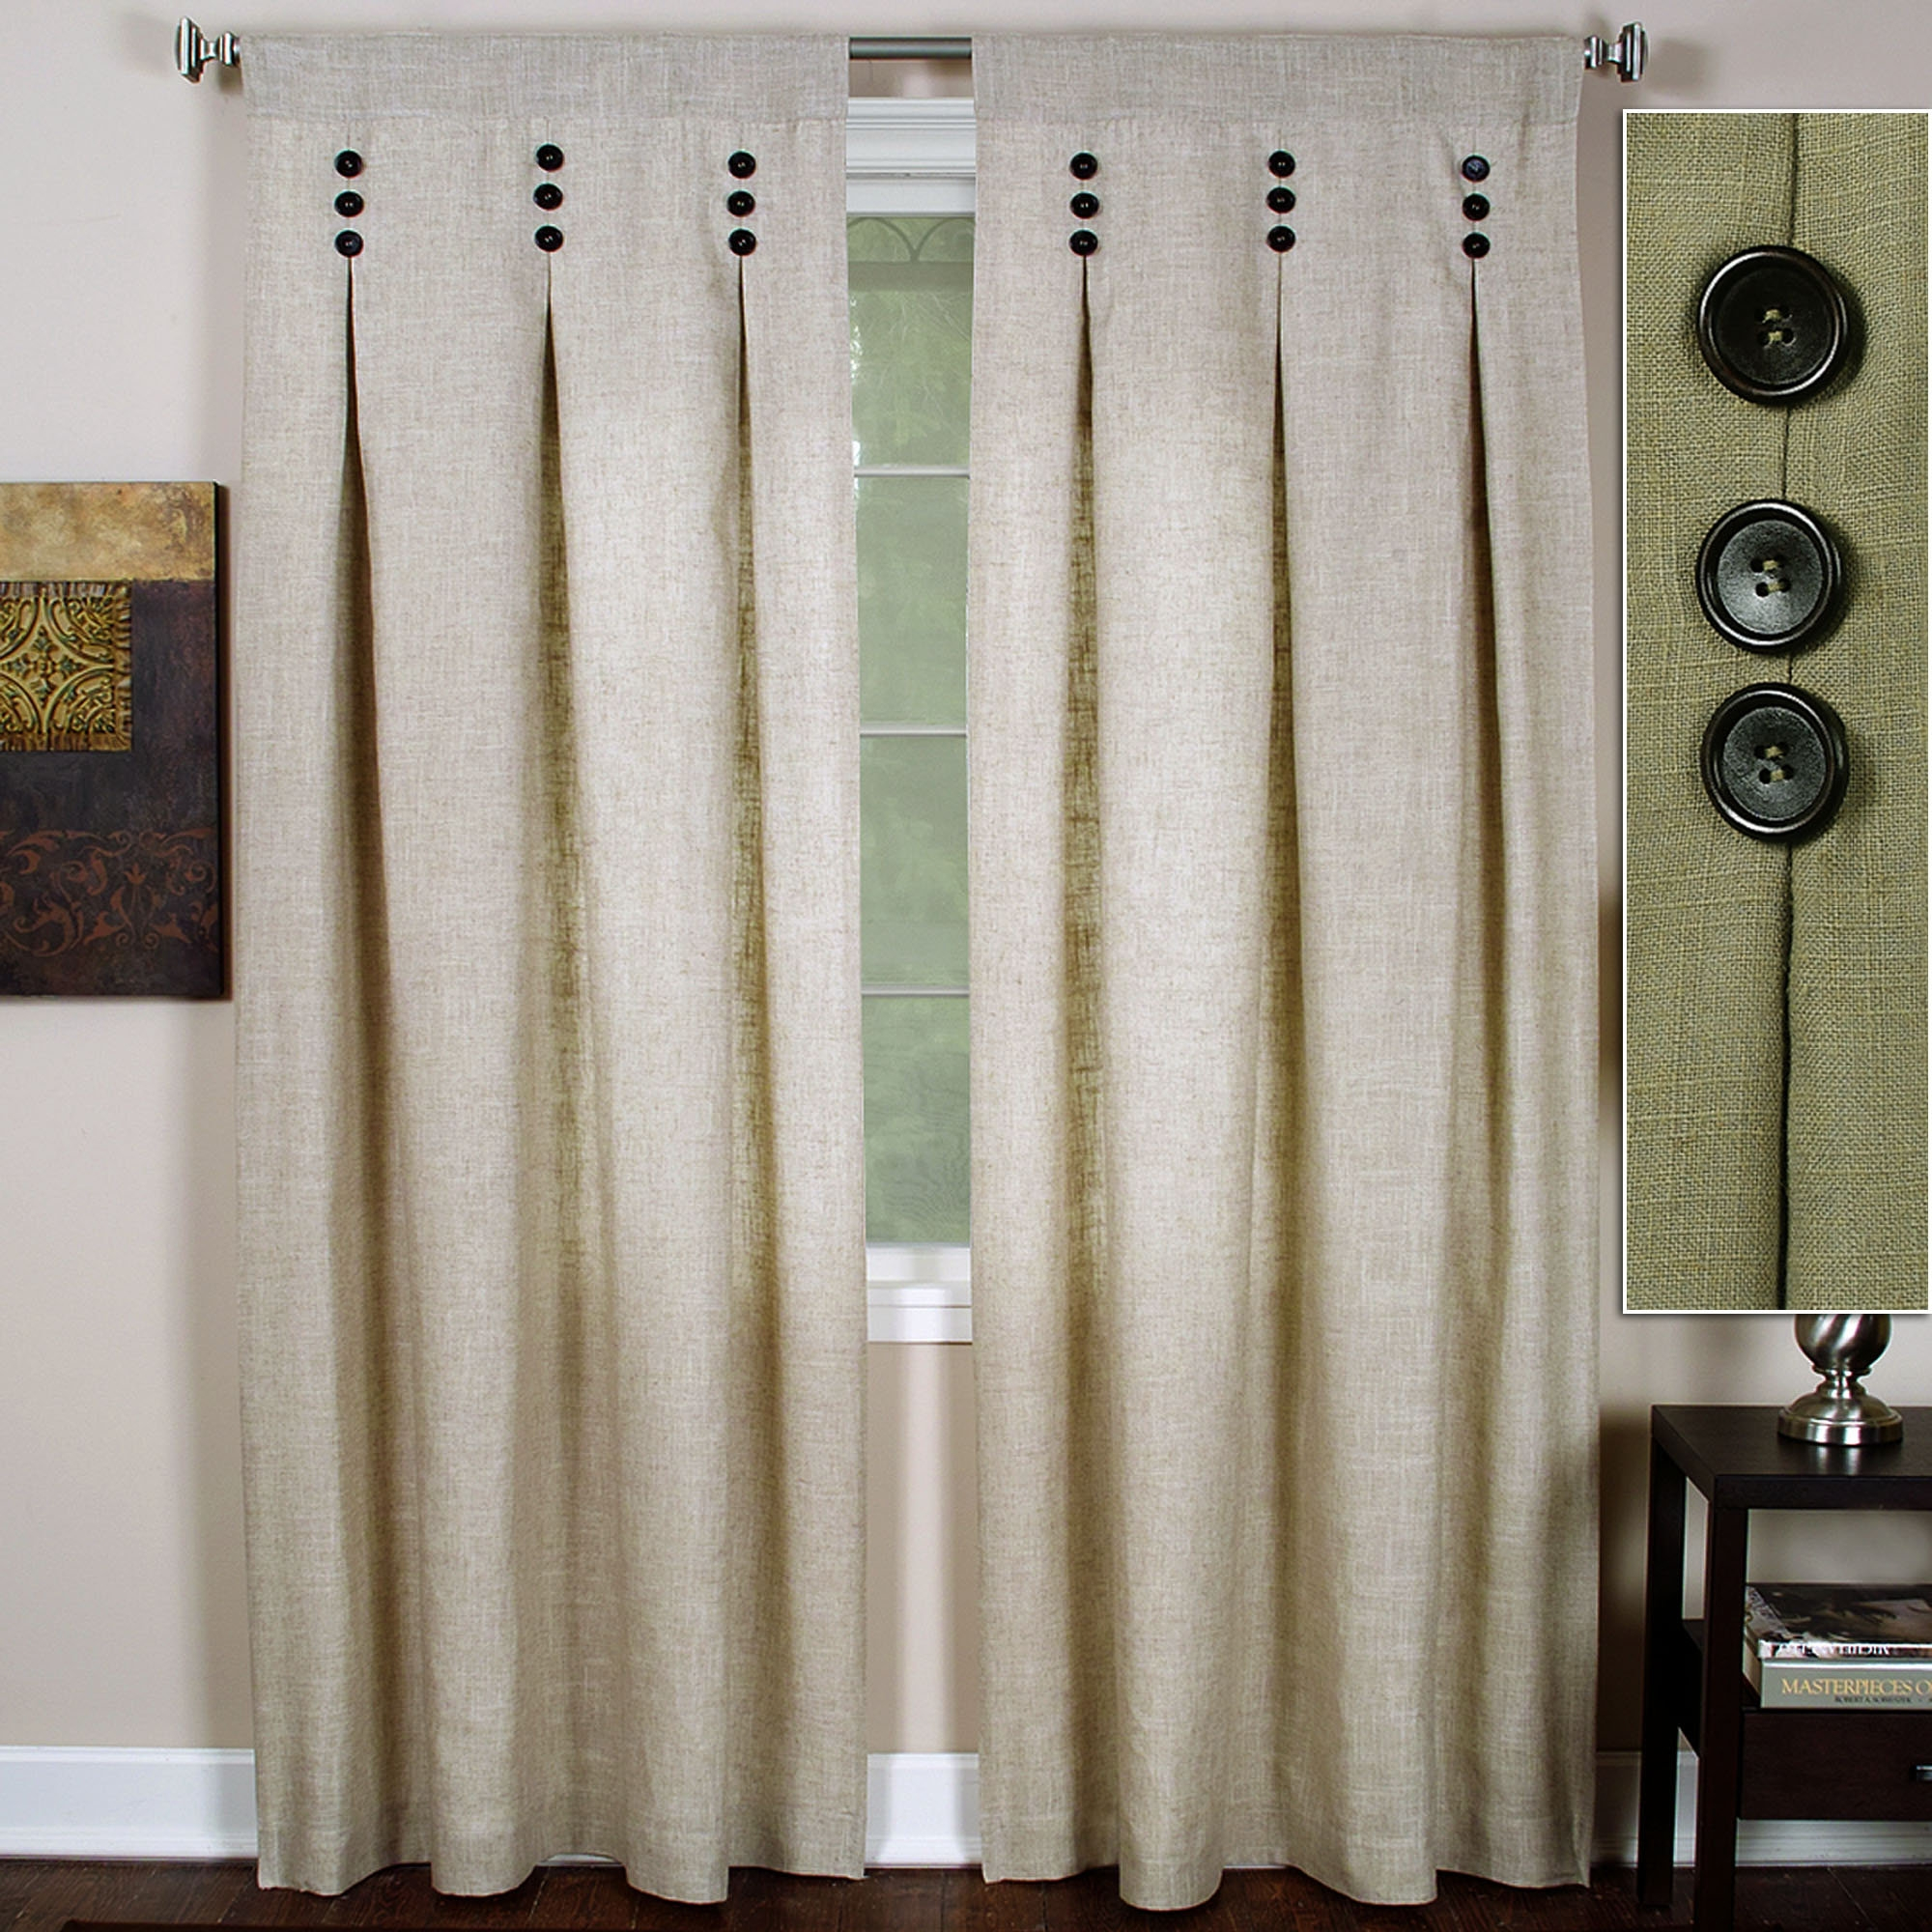 25 Photos 63 Inches Long Curtains